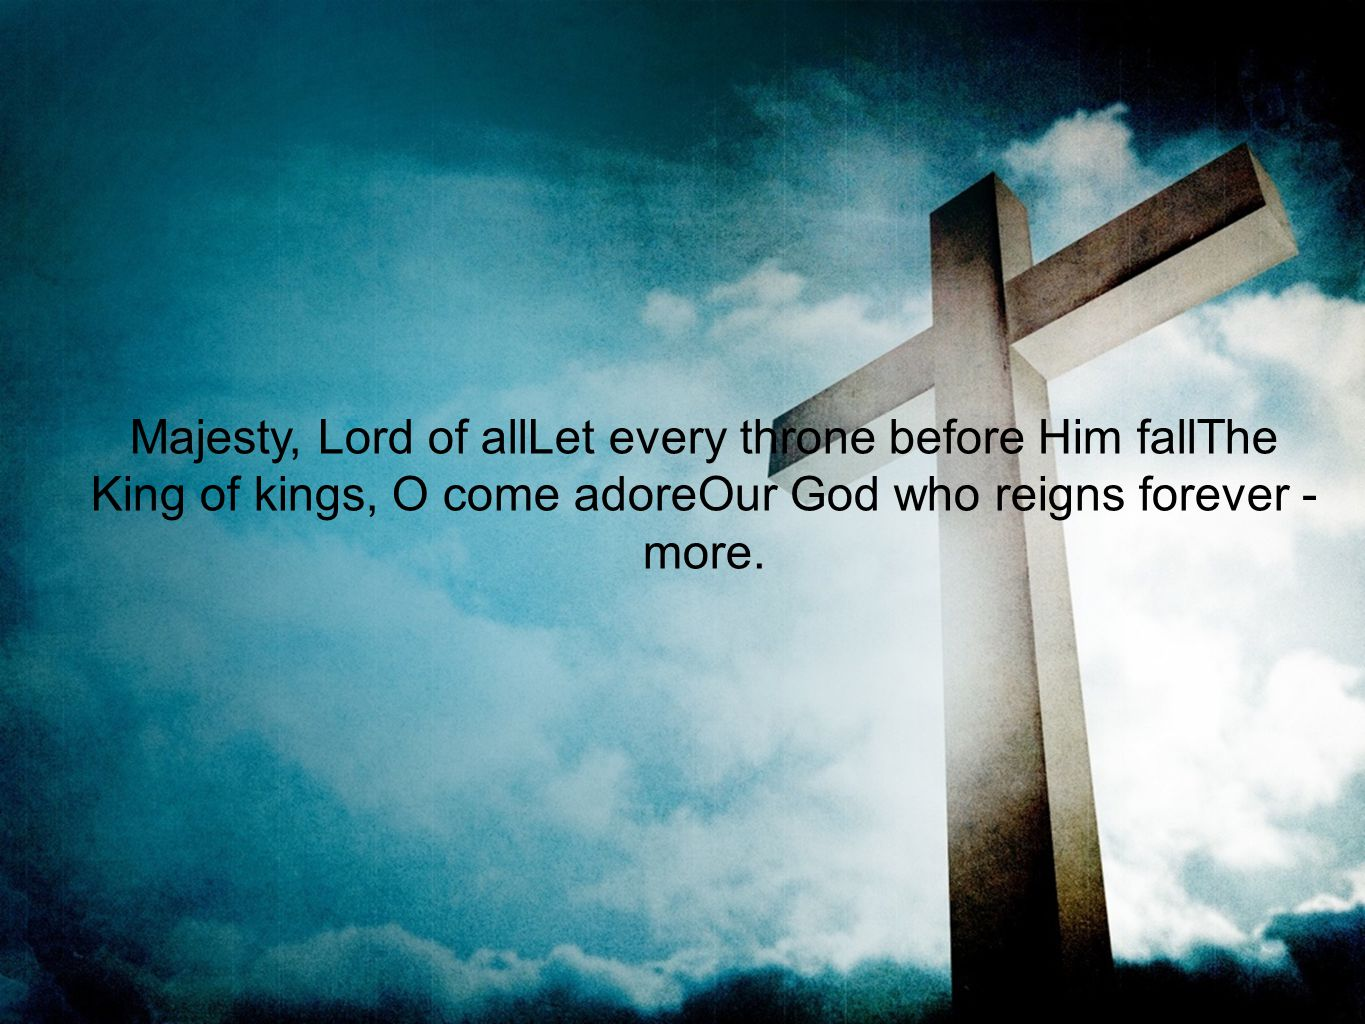 Majesty, Lord of allLet every throne before Him fallThe King of kings, O come adoreOur God who reigns forever - more.